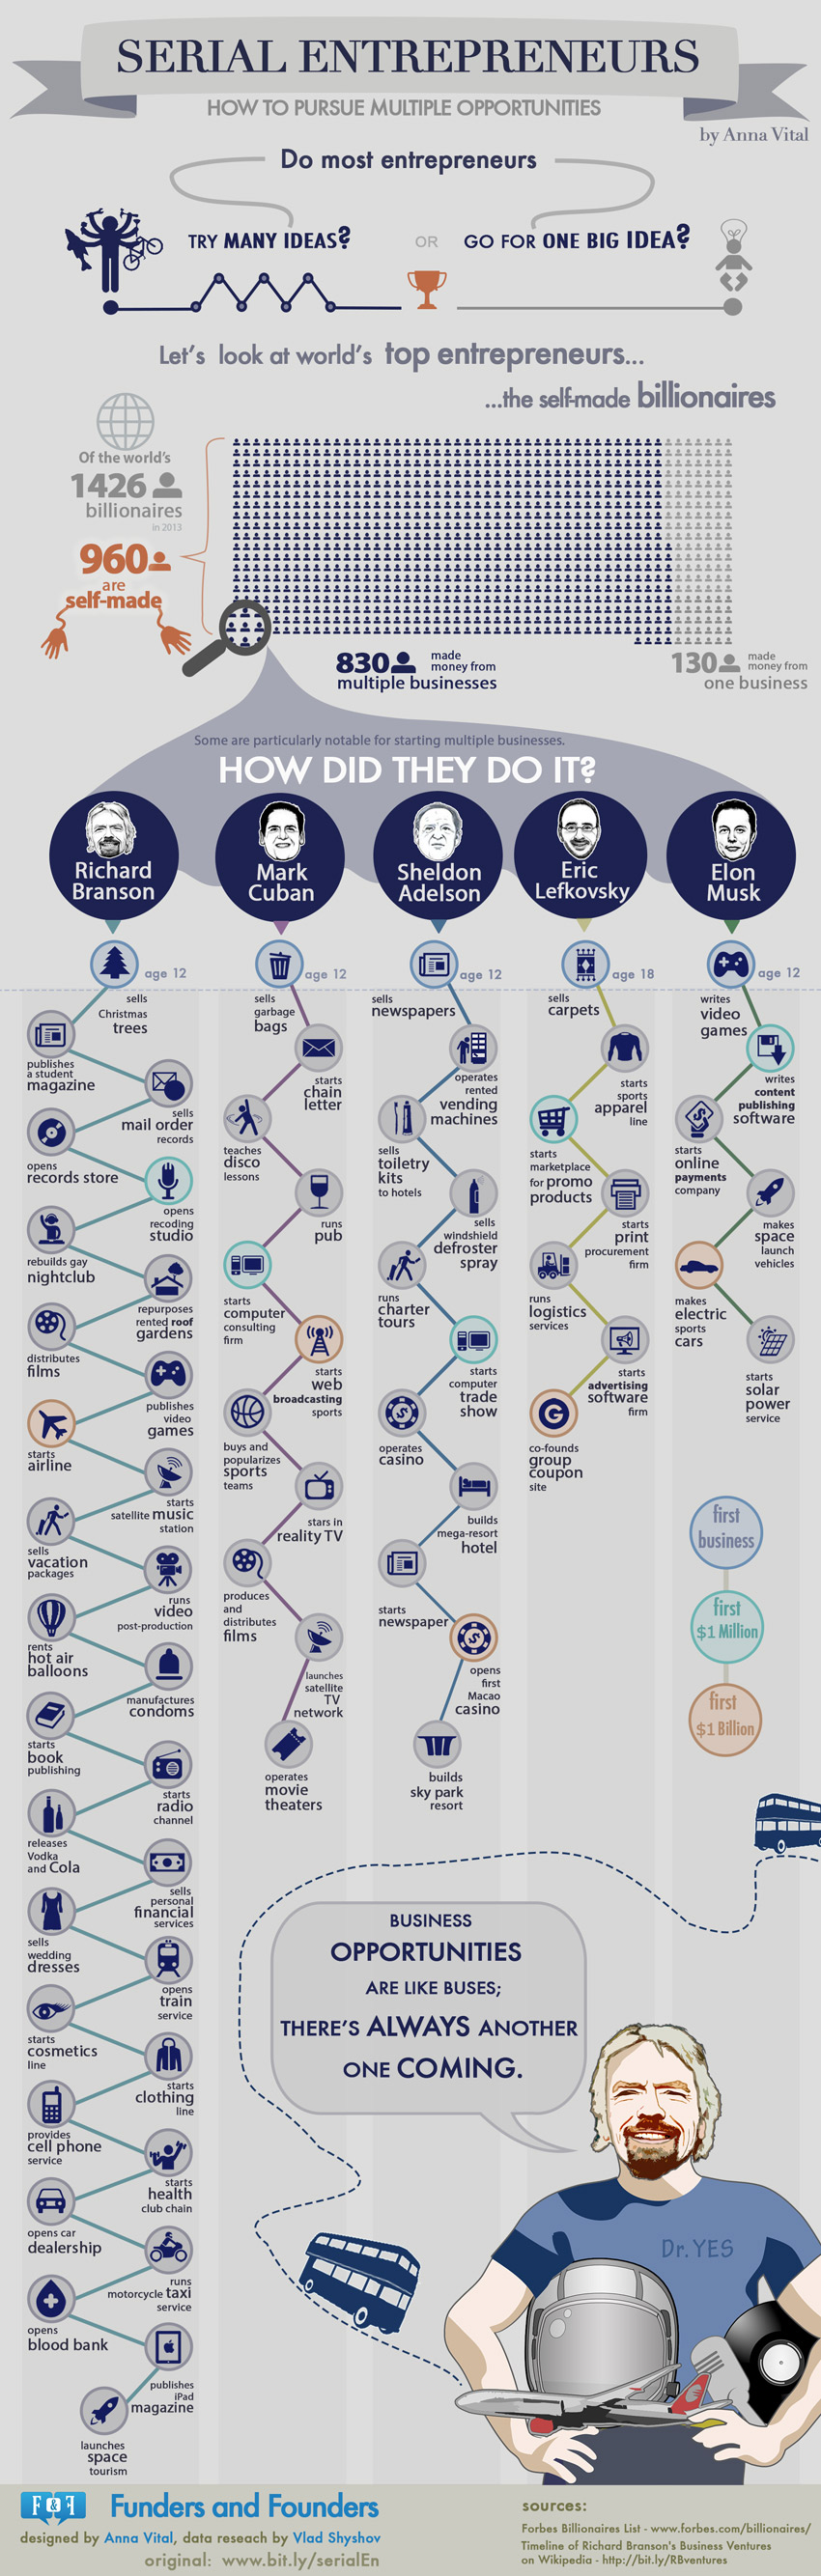 Serial Entrepreneurs  - How to Pursue Multiple Opportunities [Infographic]